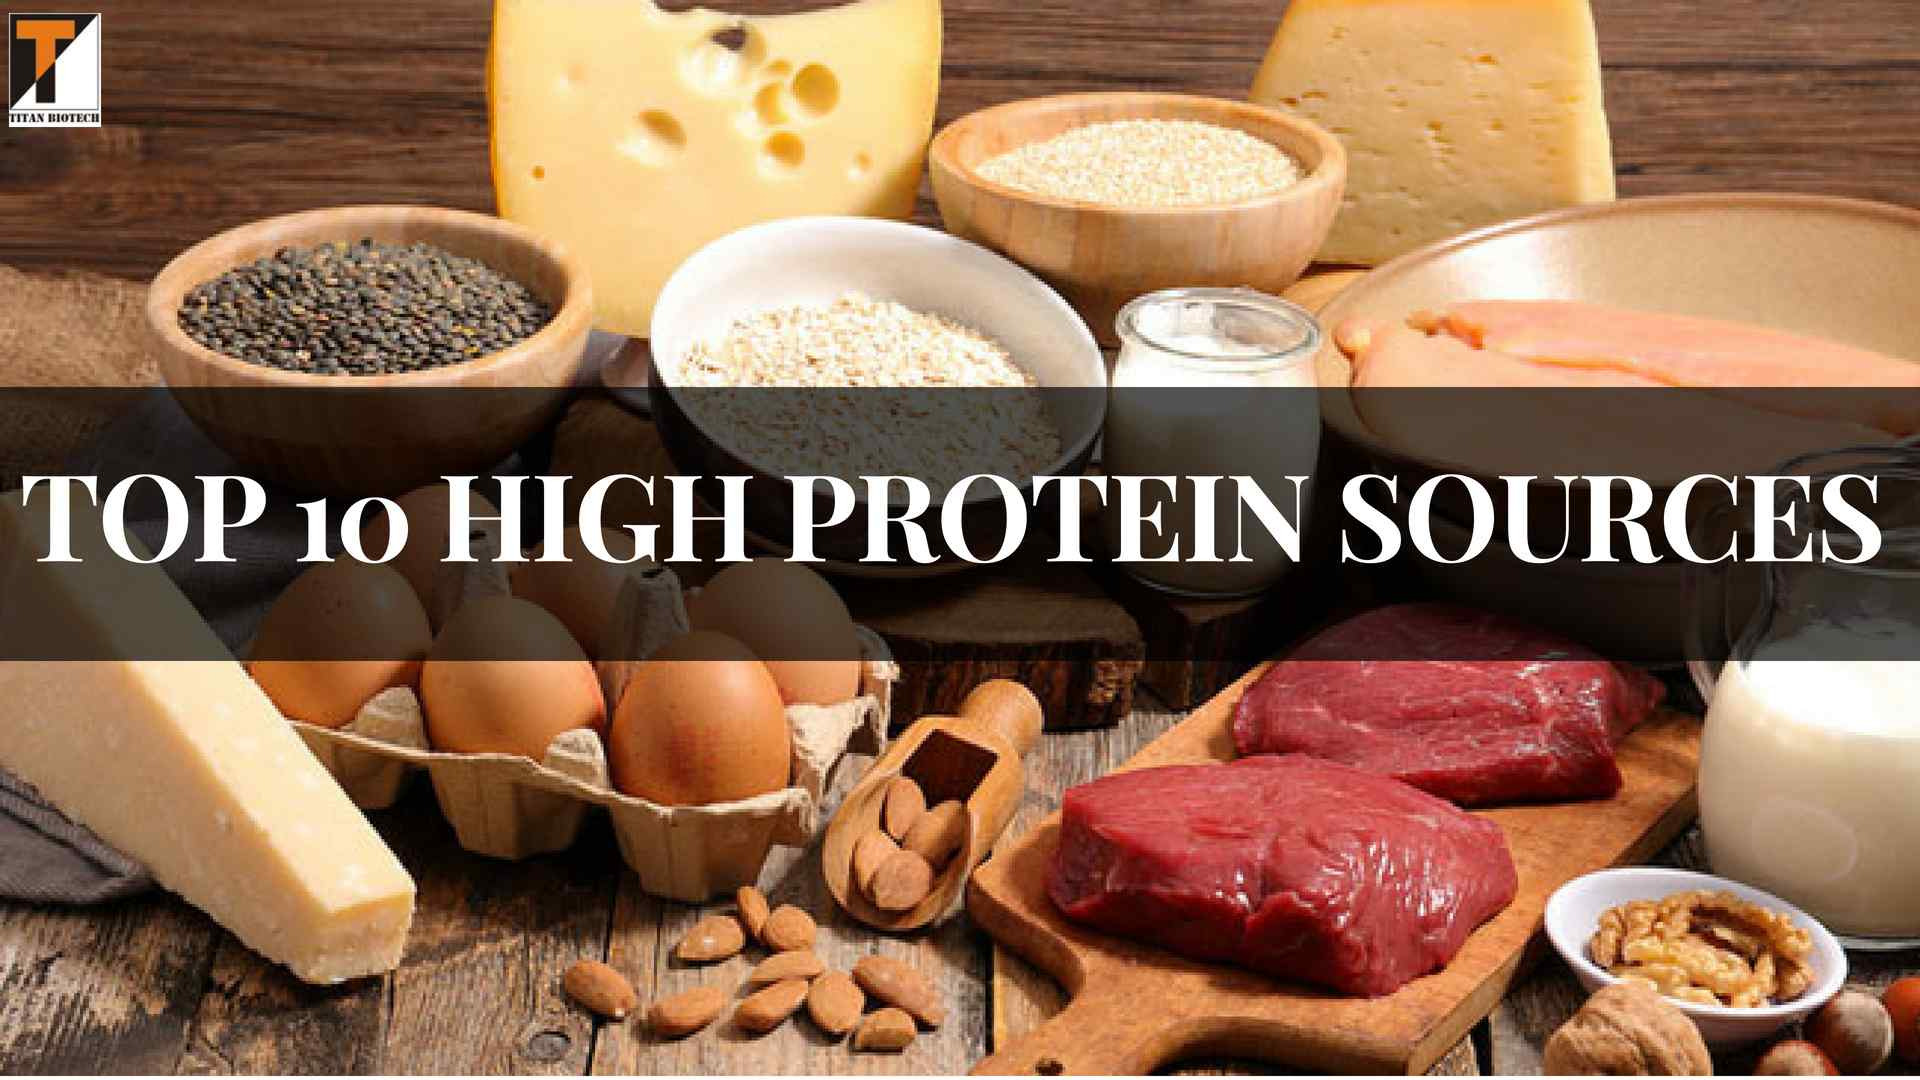 THE TOP 10 HIGH PROTEIN SOURCES